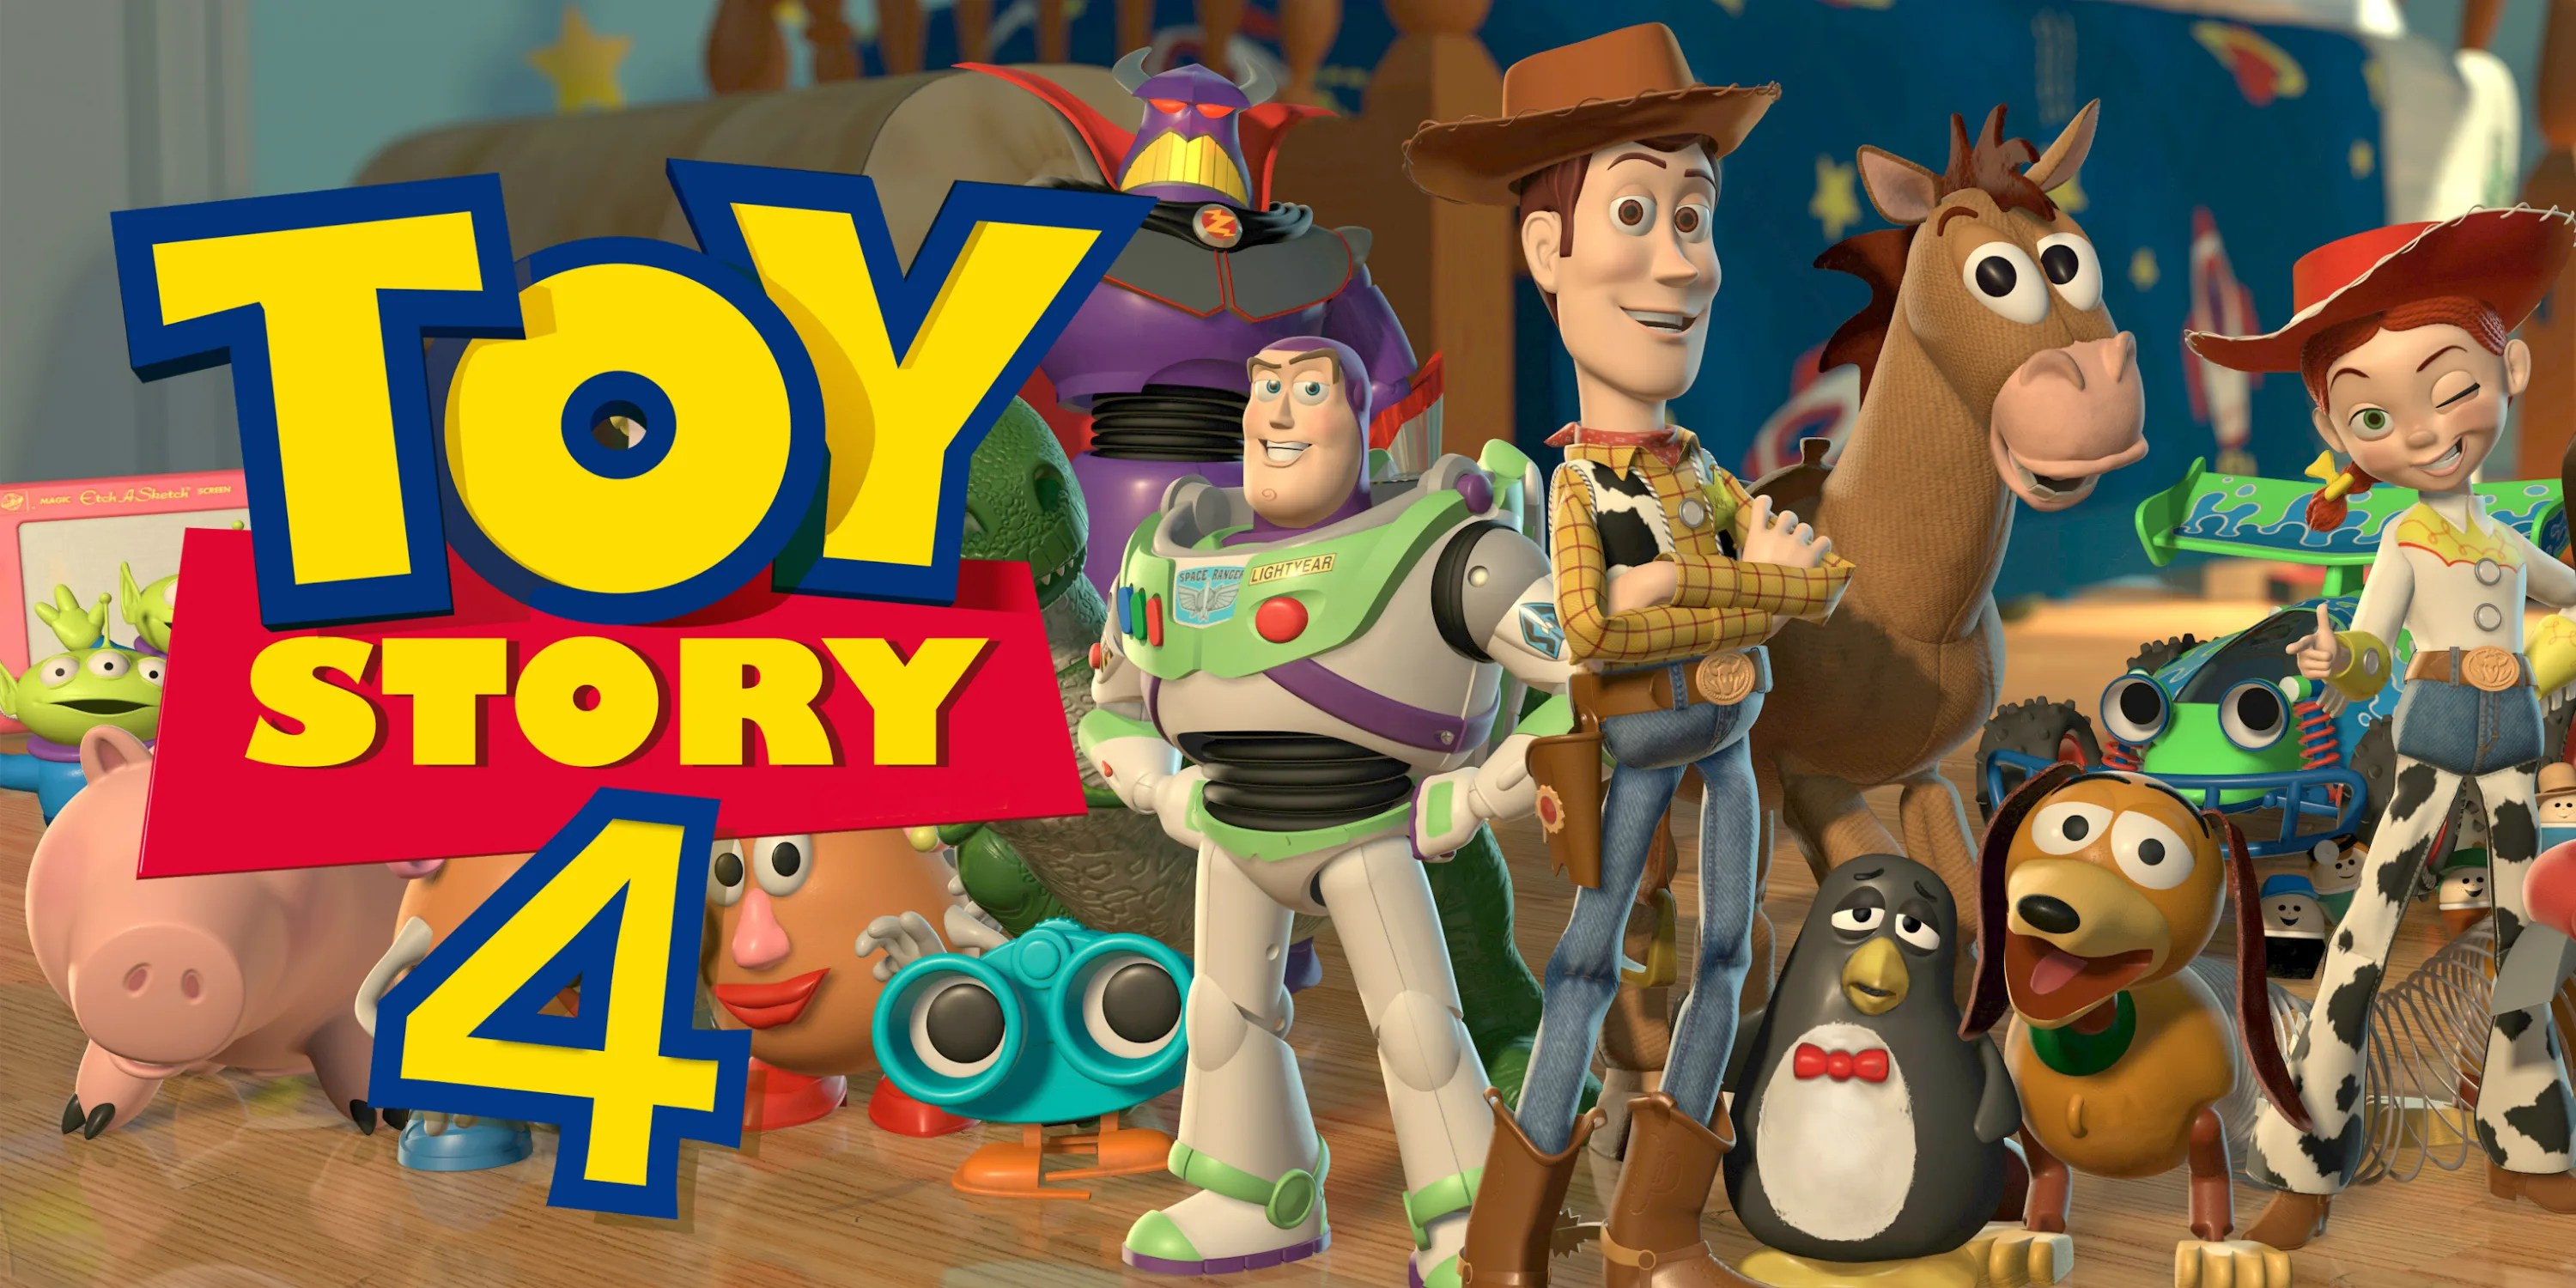 Toy Story 4 Ending Is Very Emotional Says Tim Allen